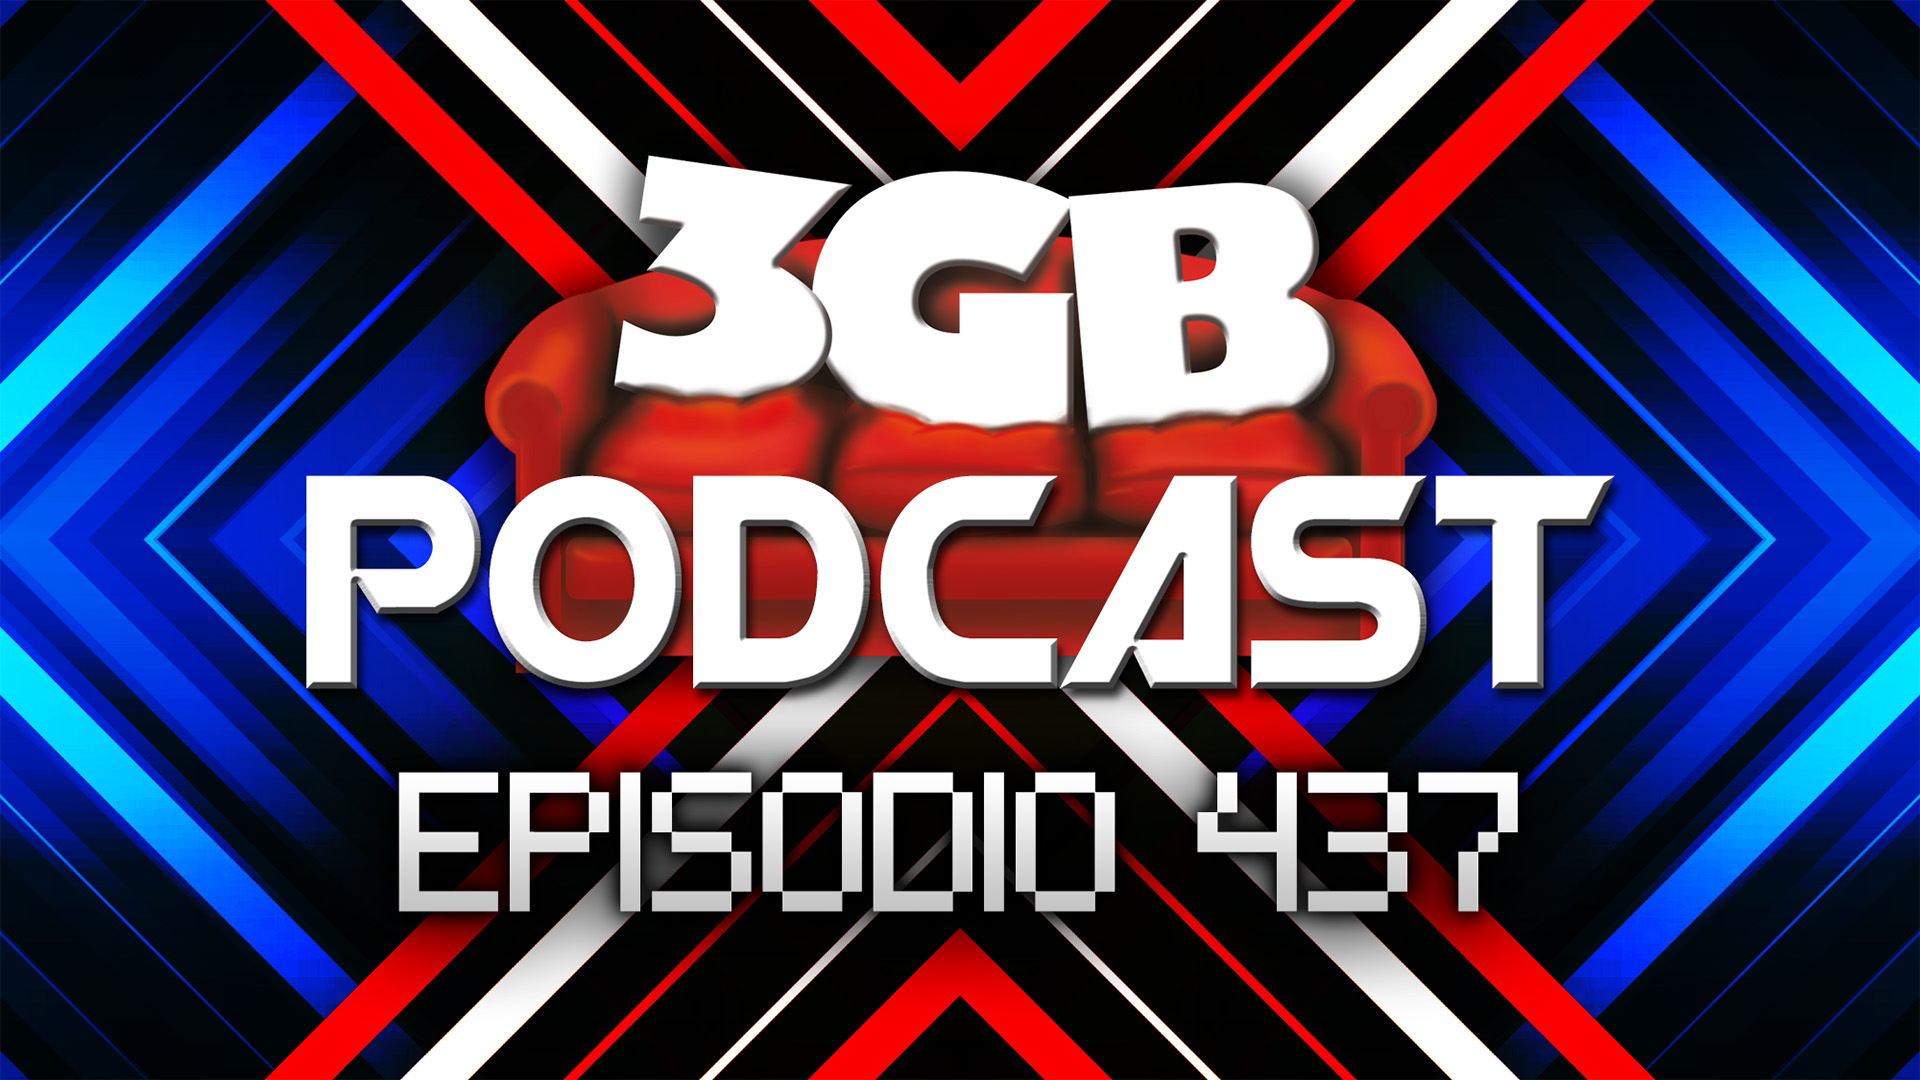 Podcast: Episodio 437, Mass Effect